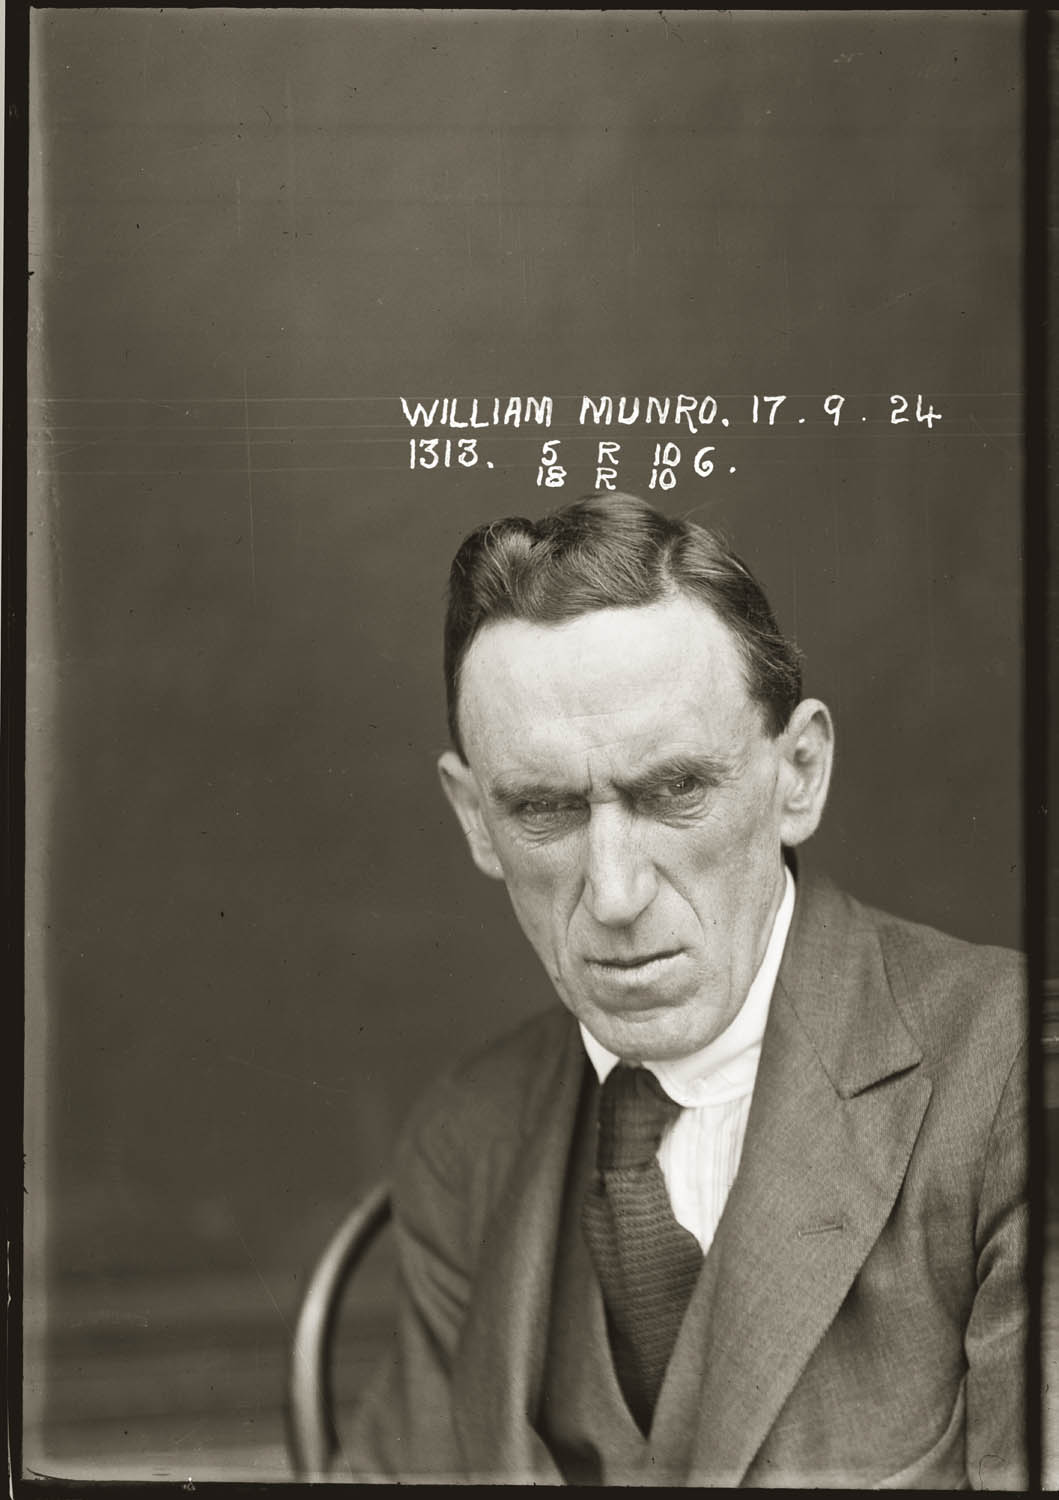 Mug shot of William Munro, 17 September 1924, Central Police Station, Sydney.